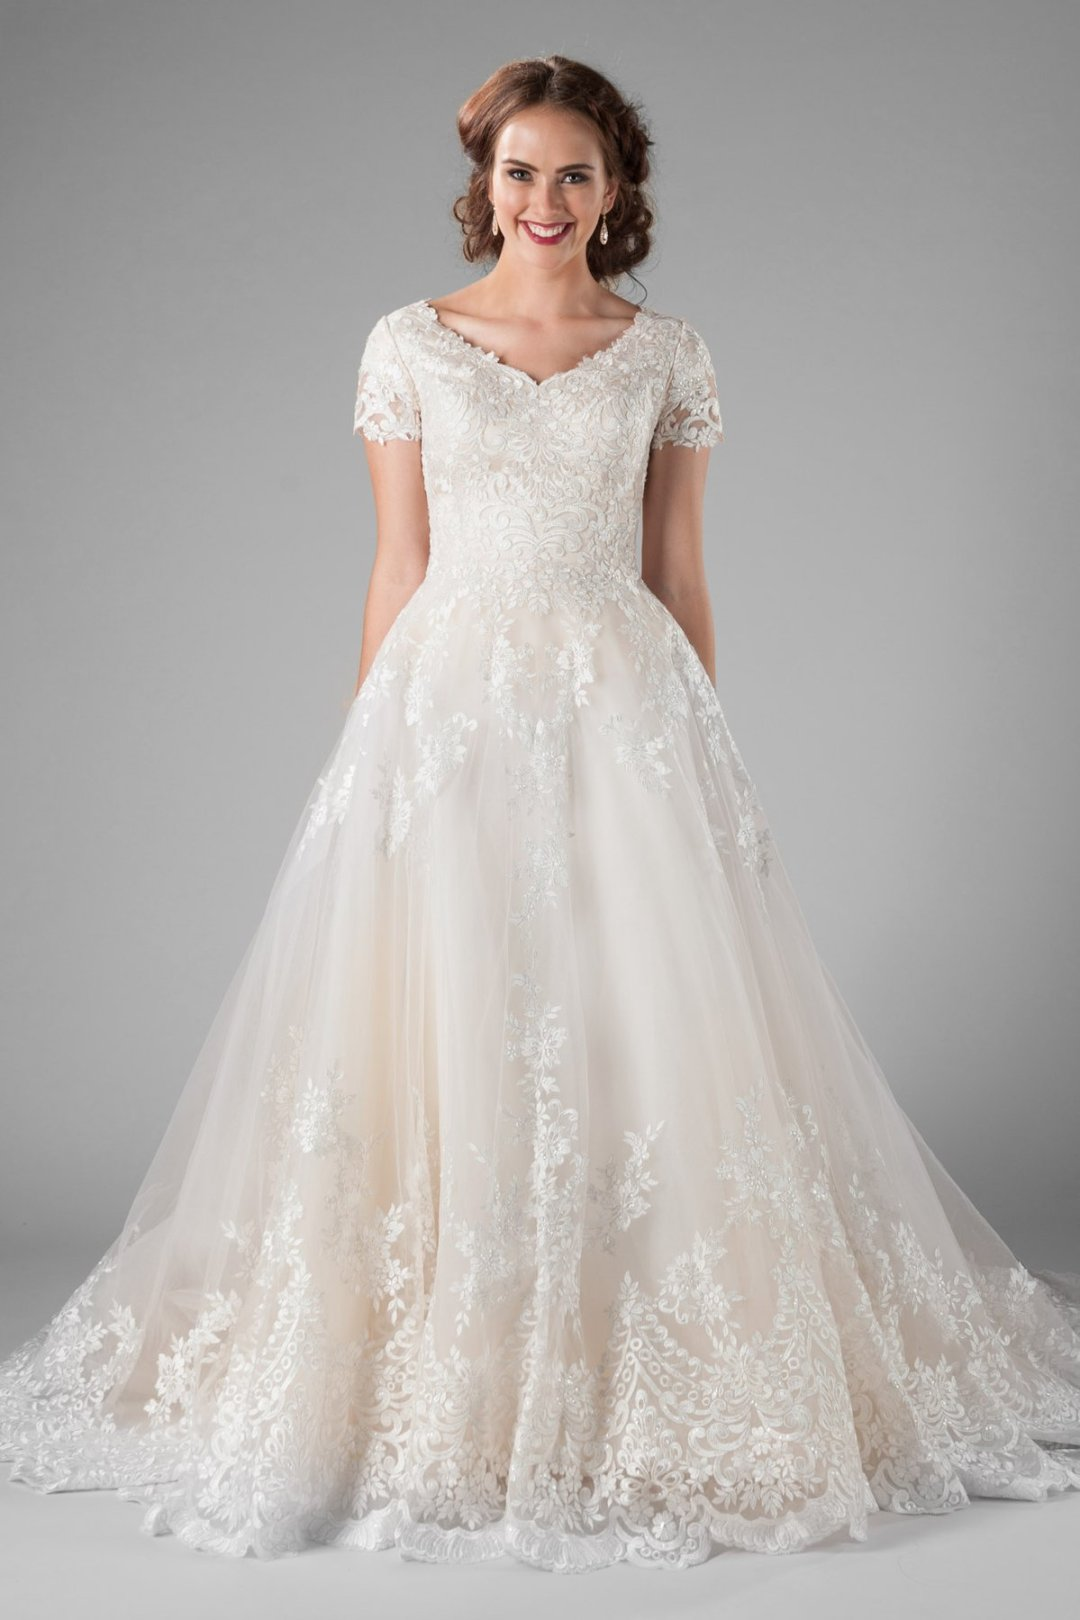 25 Modest Ball Gown Wedding Dresses - 1